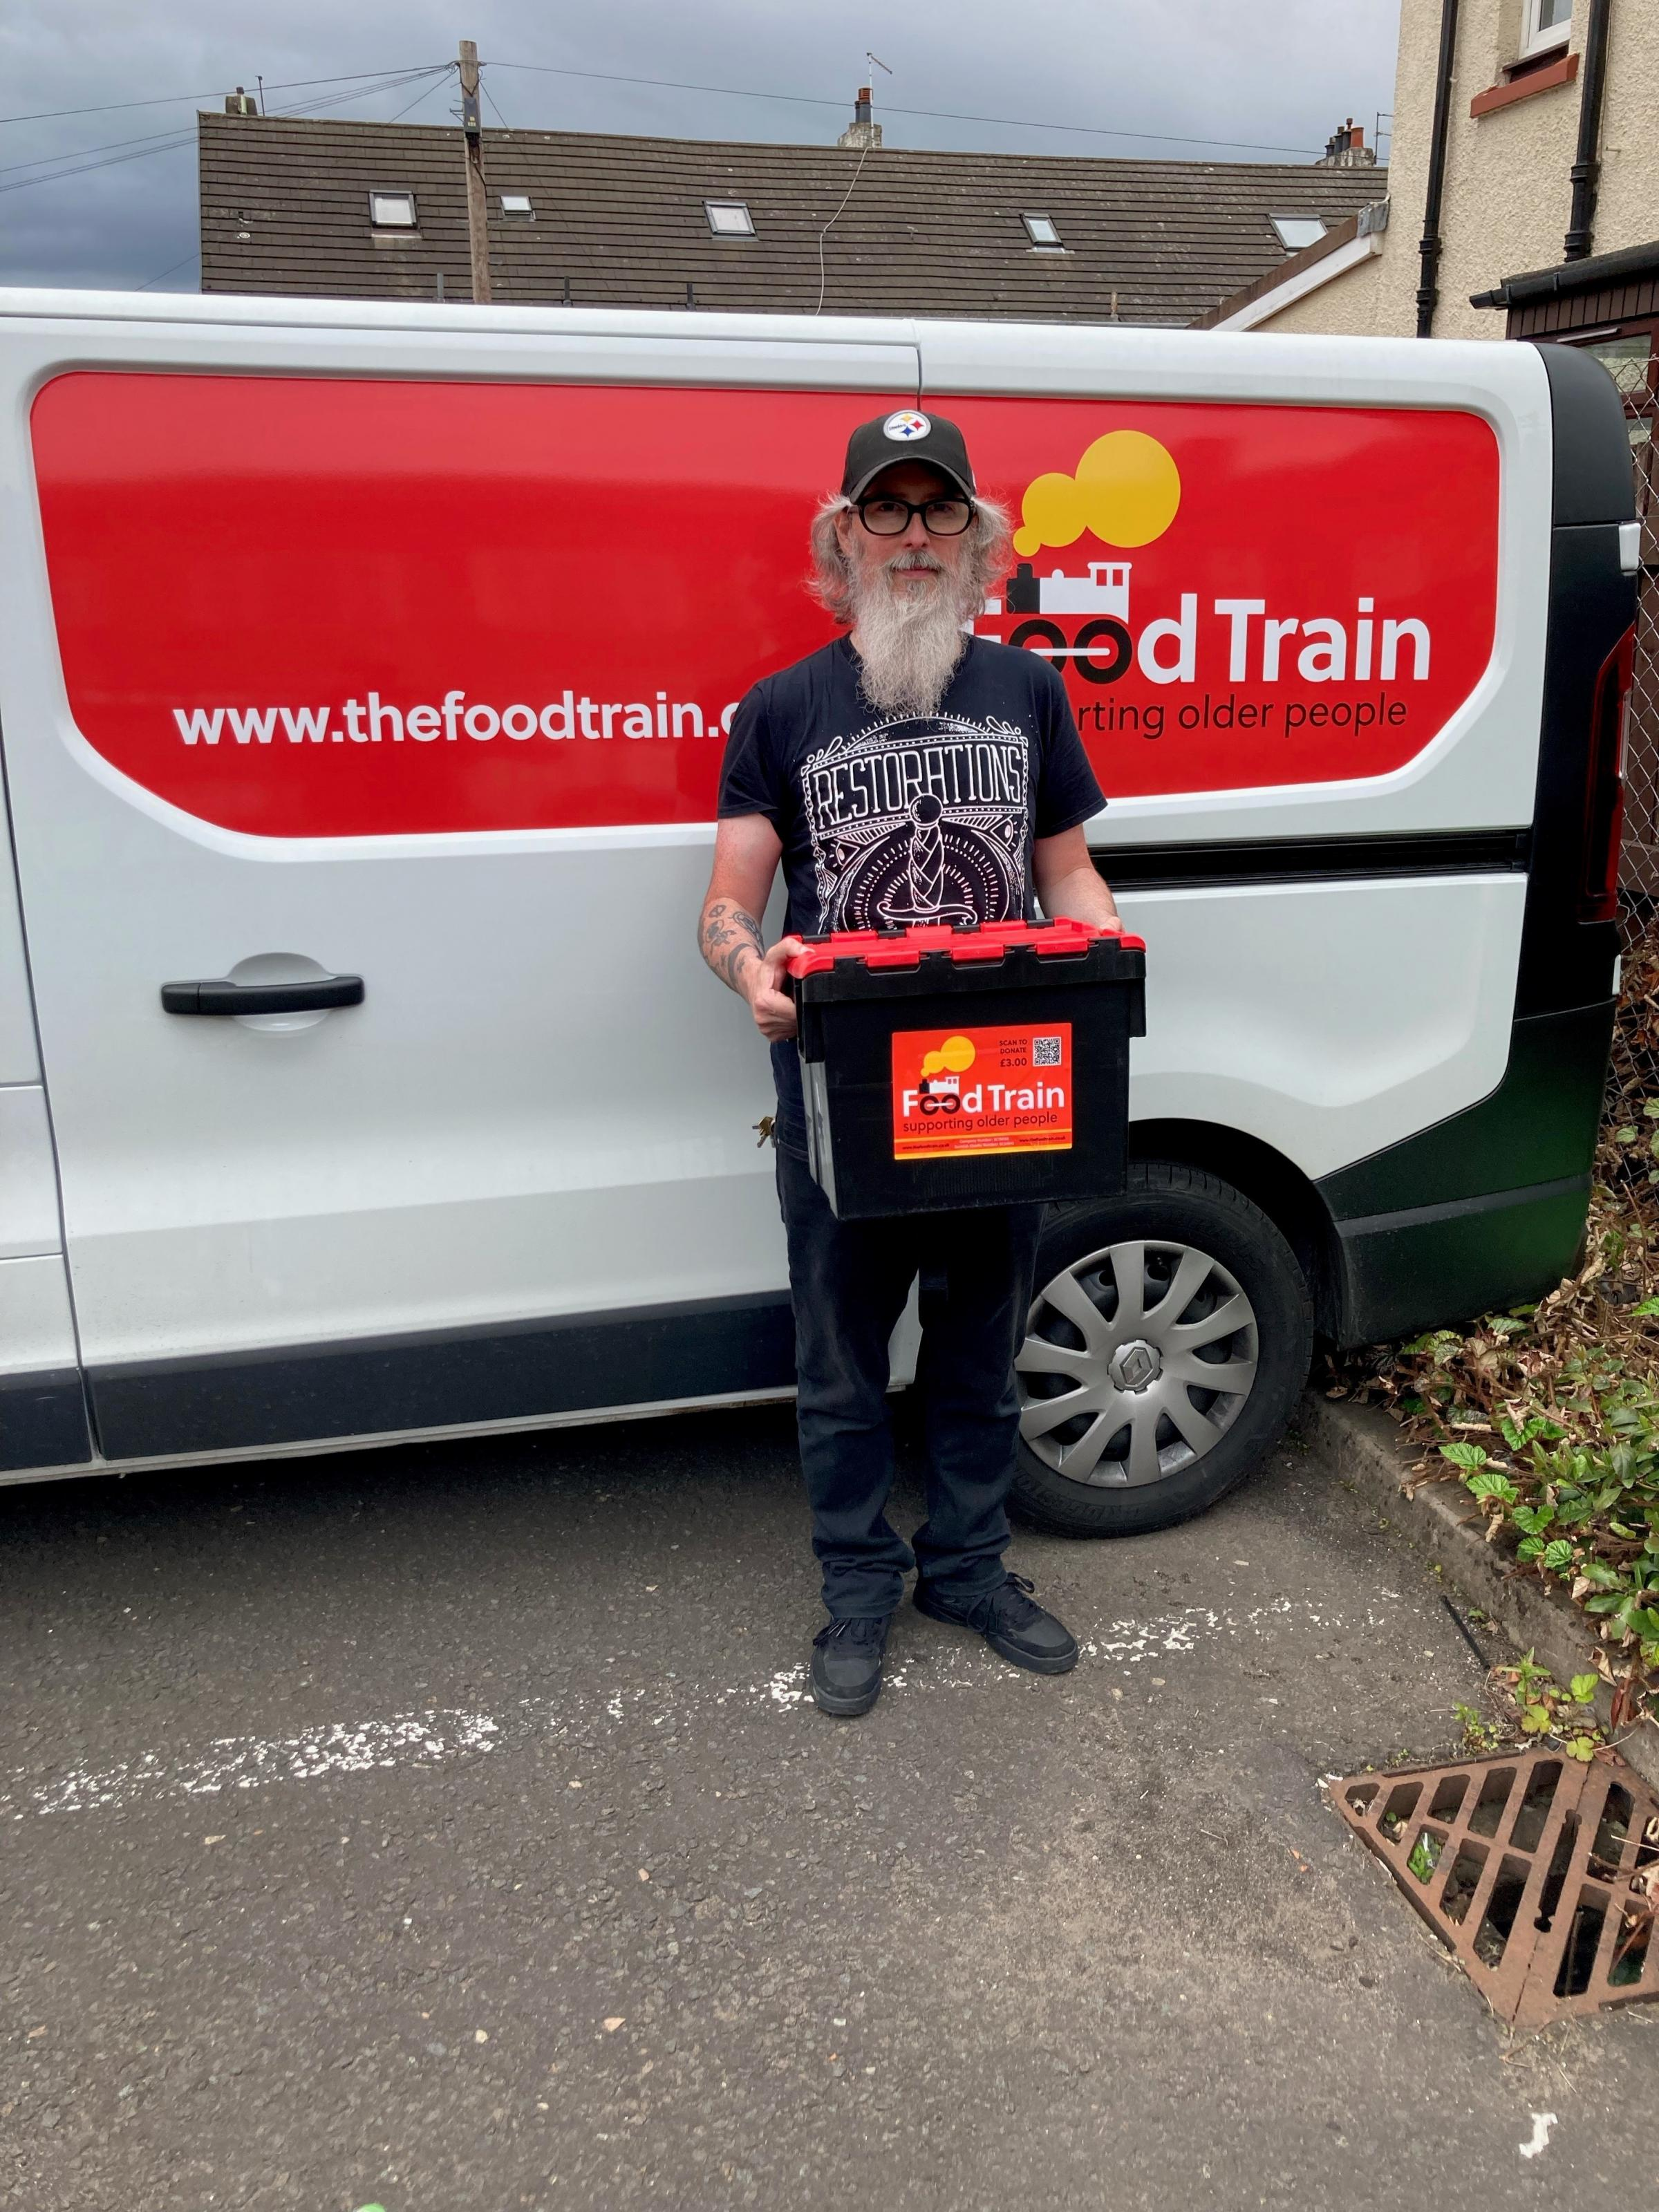 Volunteer Ian Arthur has been making a difference with the Food Train charity